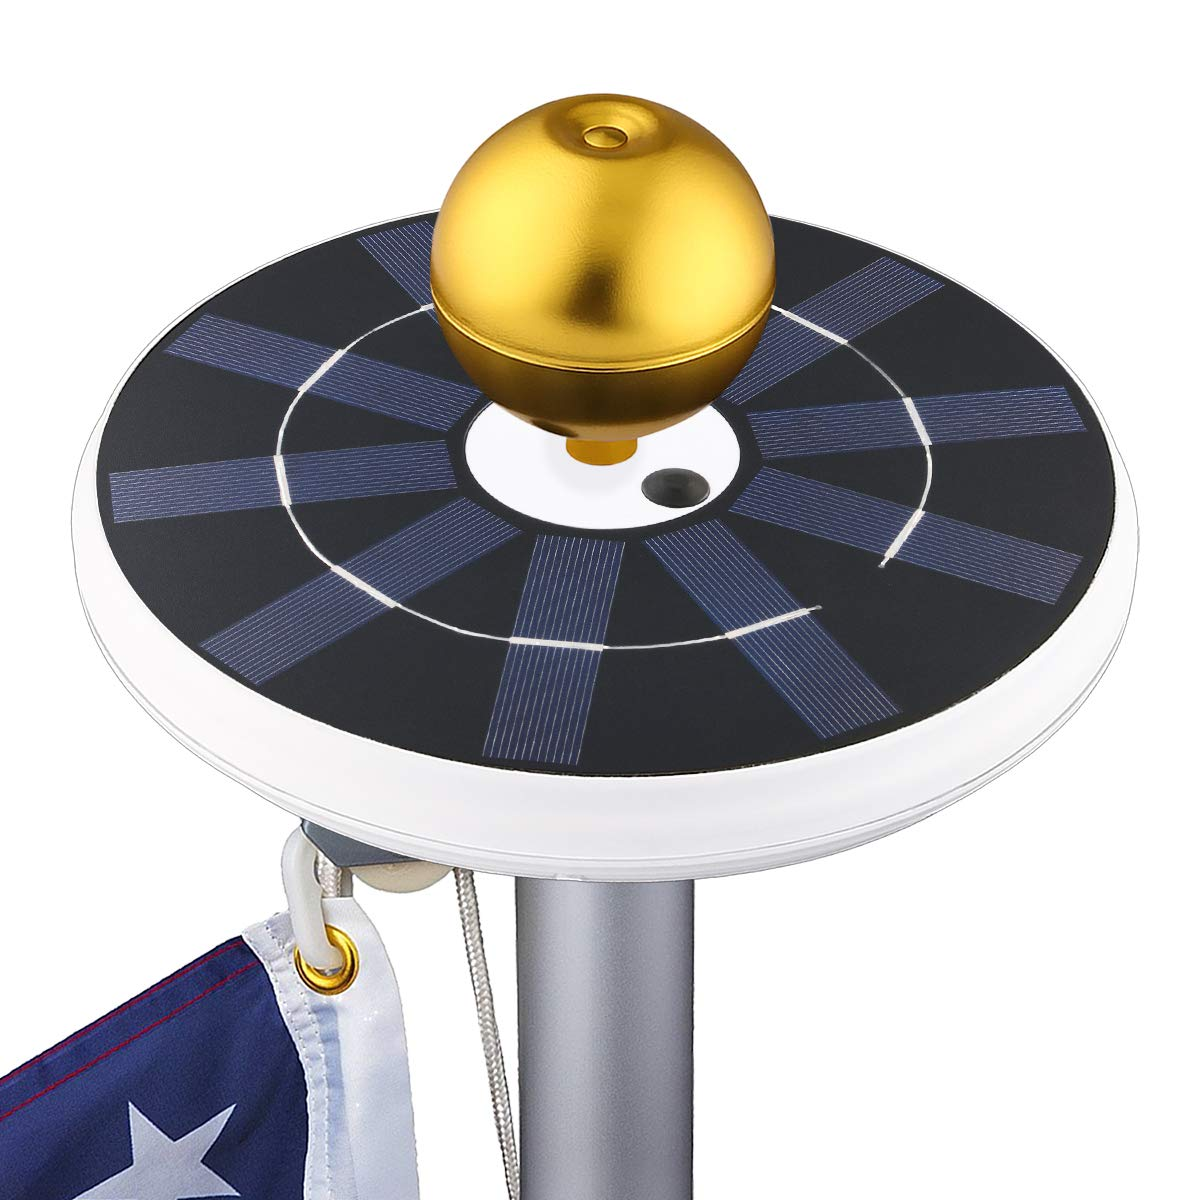 Tranmix Solar flagpole Light